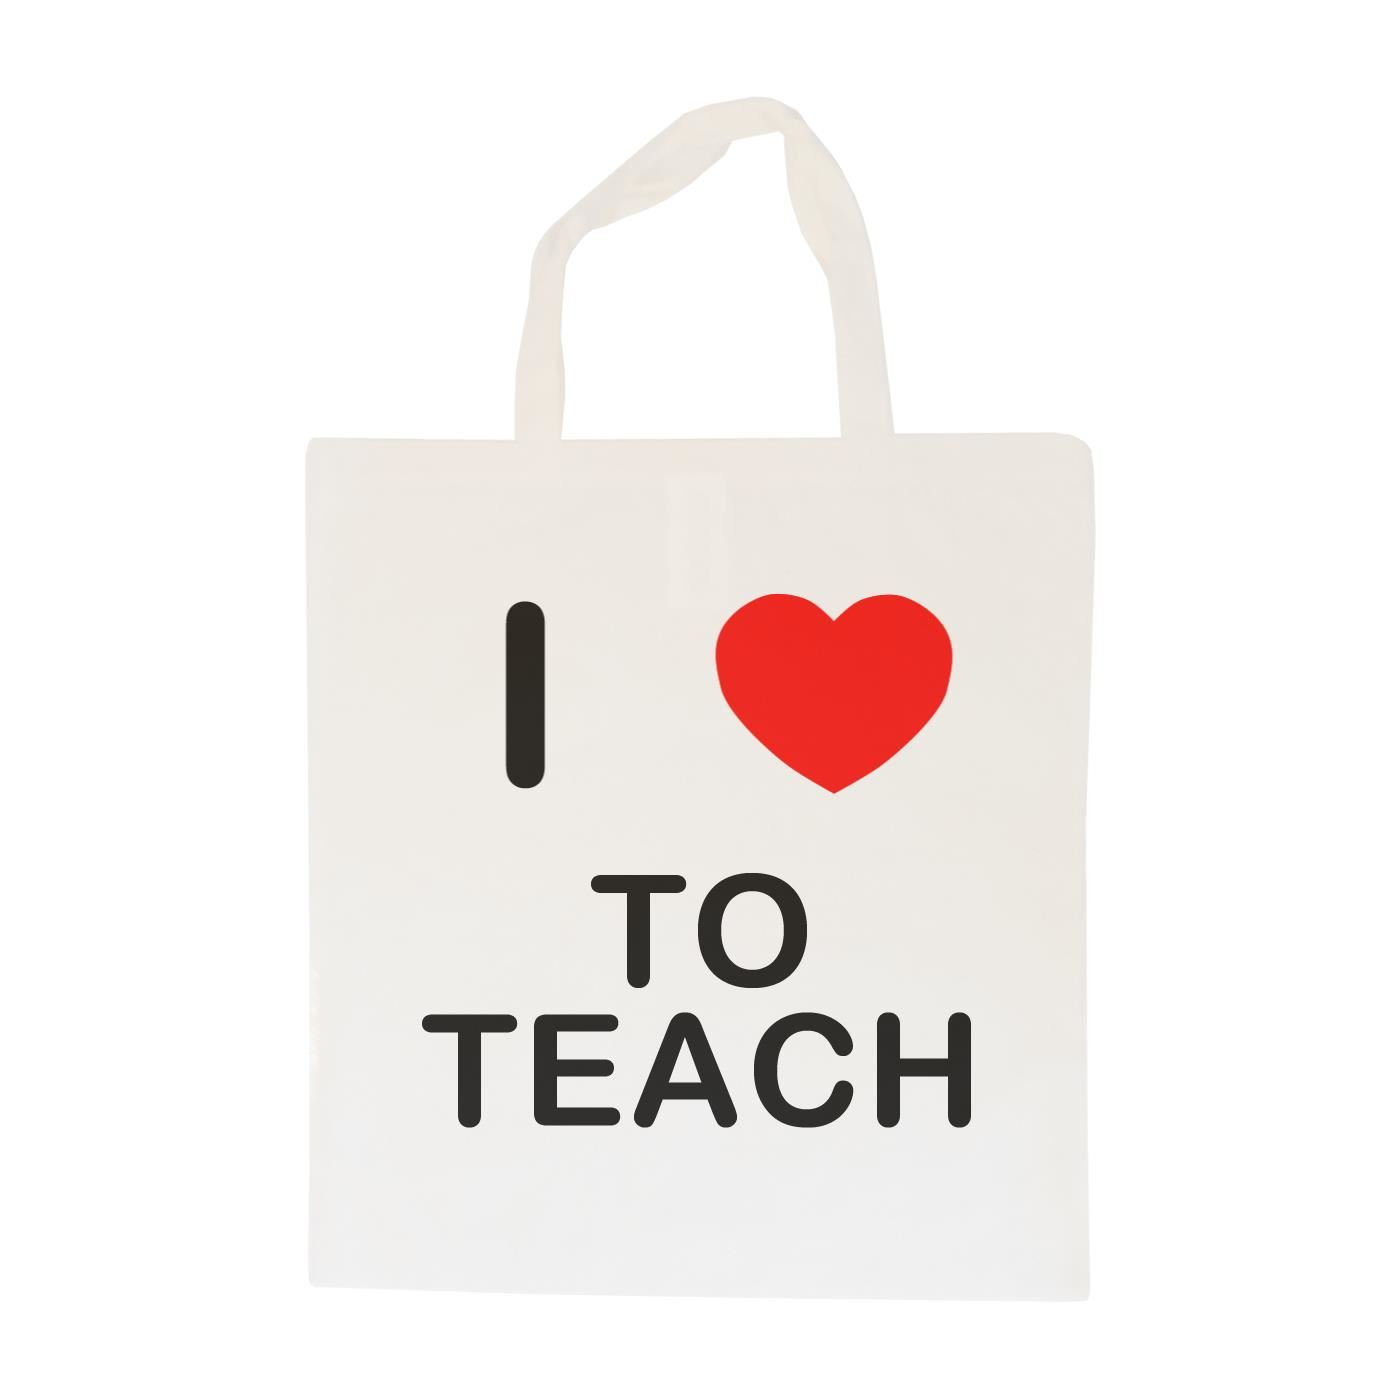 I Love To Teach - Cotton Bag | Size choice Tote, Shopper or Sling